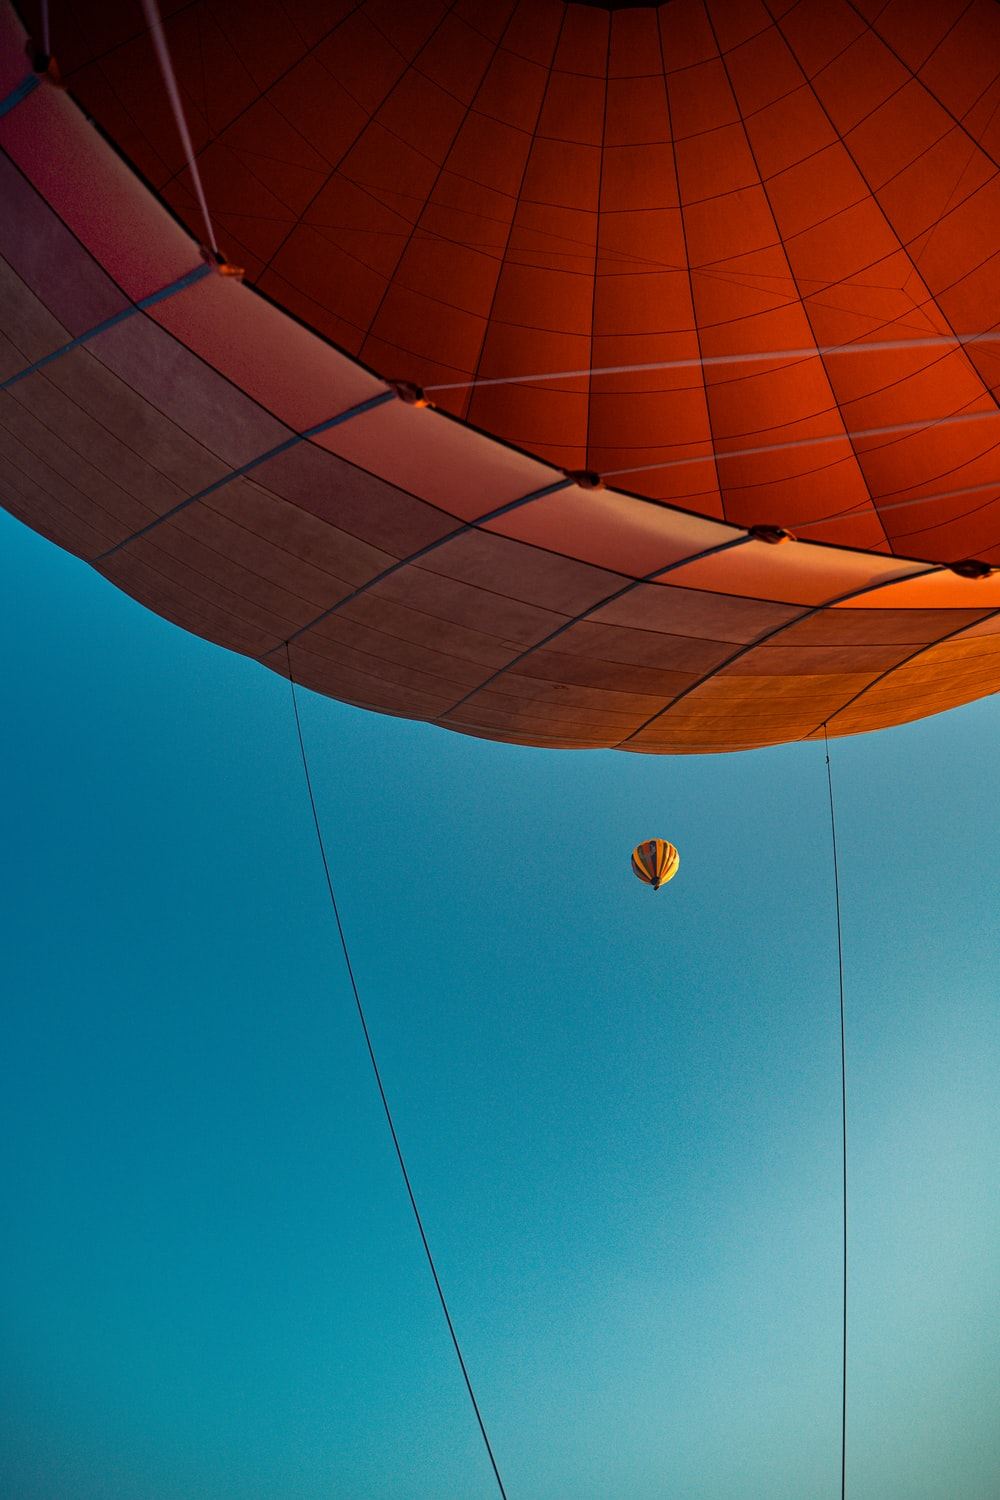 brown hot air balloon in the sky